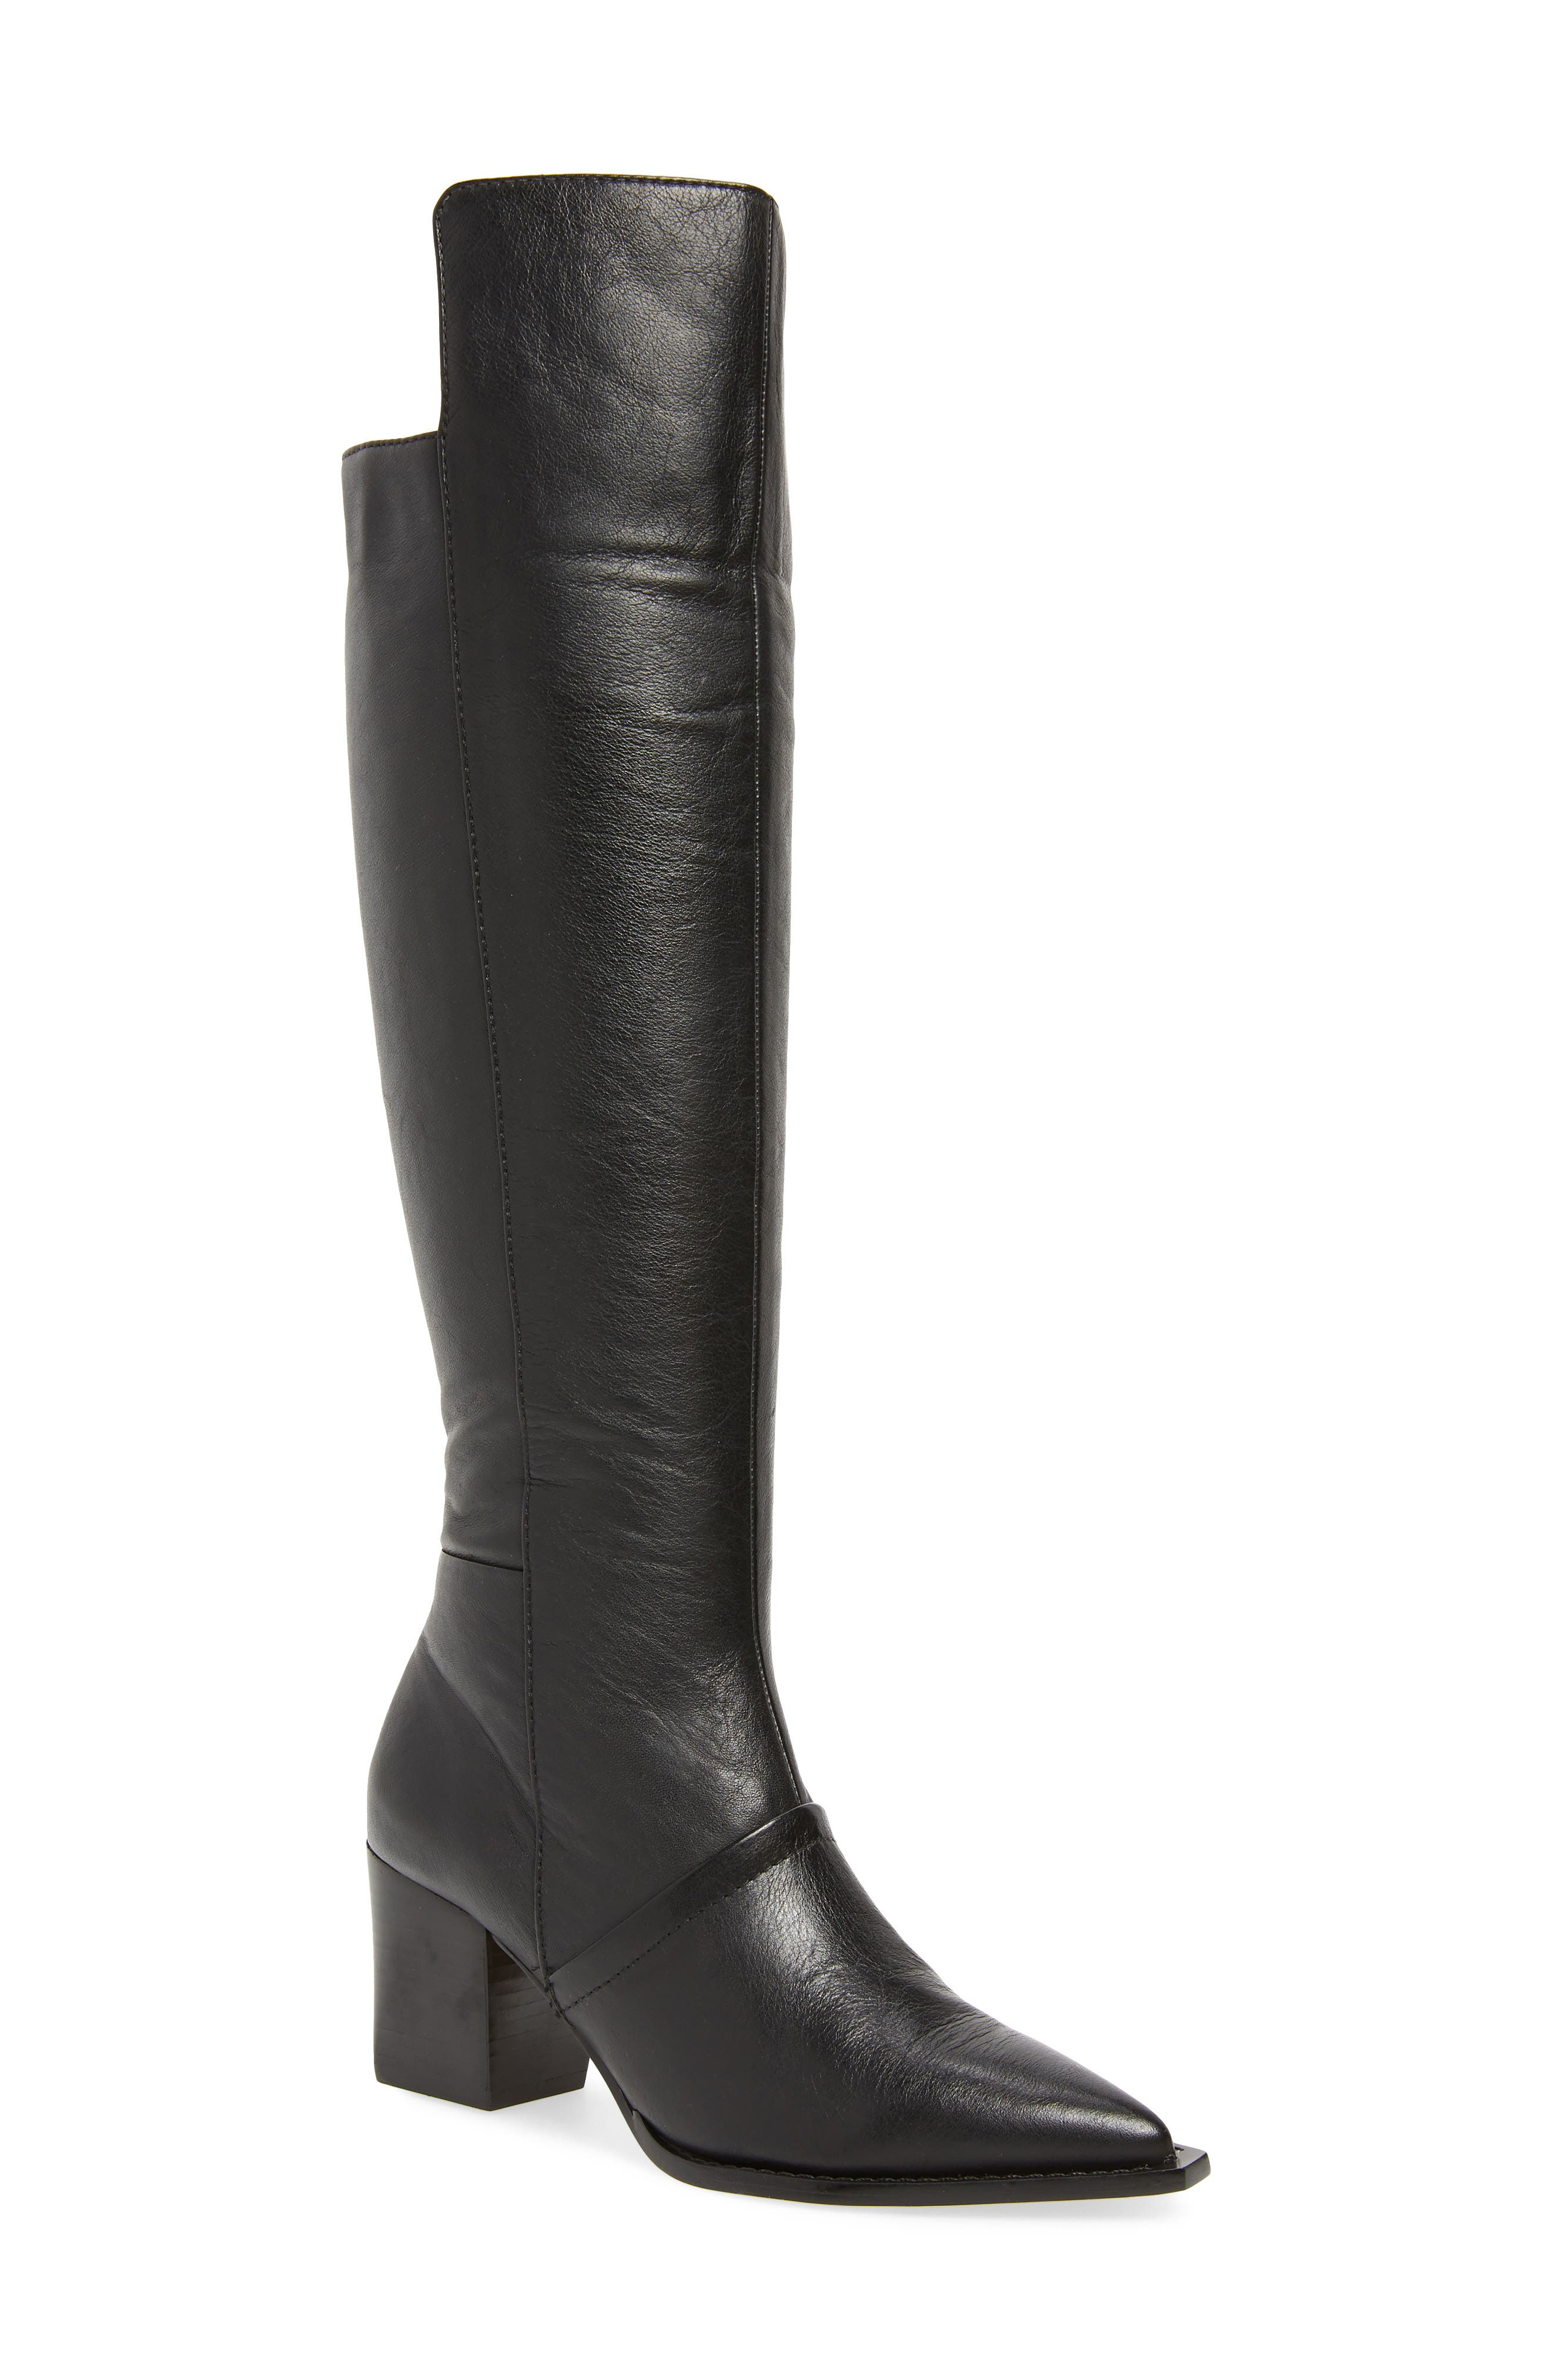 Lust For Life Tania Knee High Boot- Black